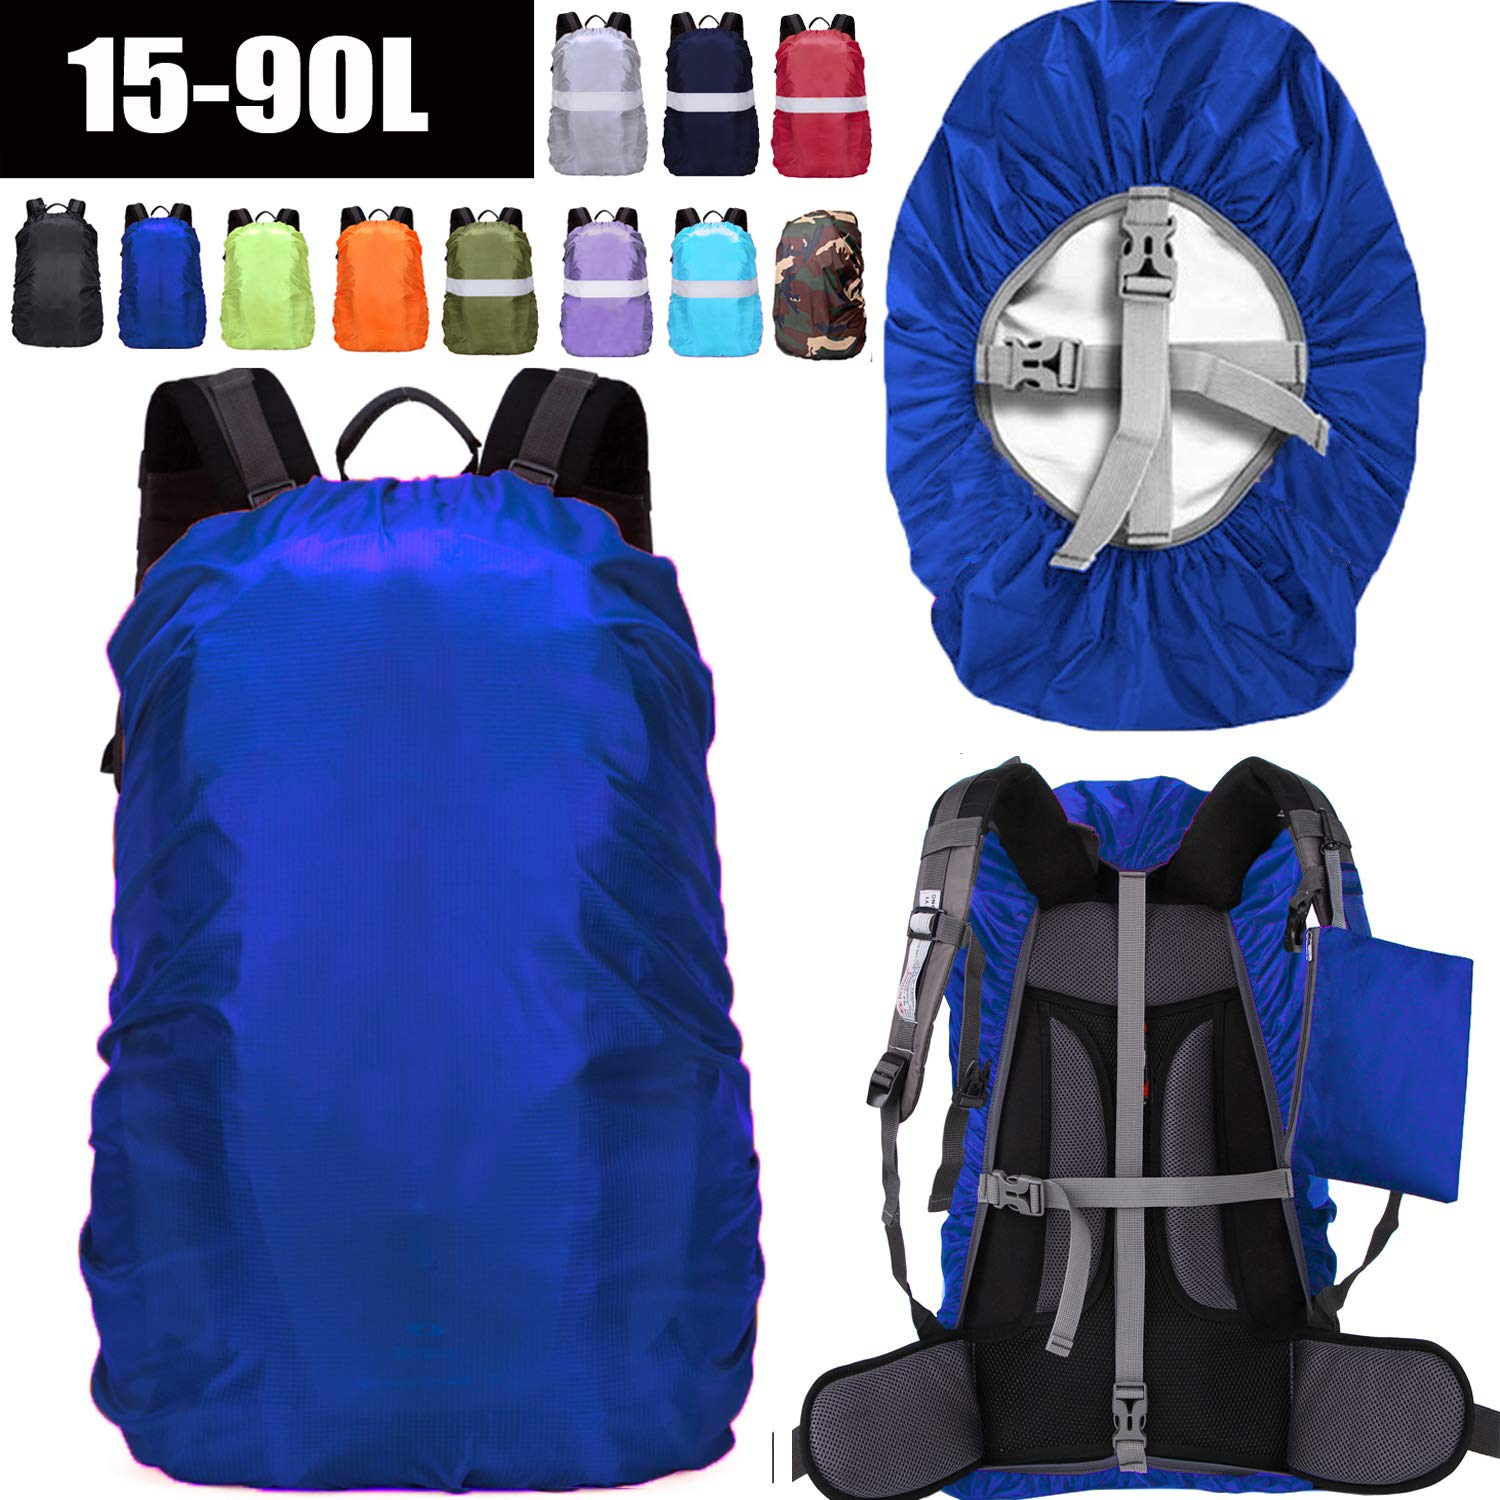 ZM-SPORTS 15-90L Upgraded Waterproof Backpack Rain Cover,with Vertical Adjustable Fixed Strap Avoid to Falling,Gift with Portable Storage Pack (Blue, 2XL(for 65-75L Backpack) by ZM-SPORTS